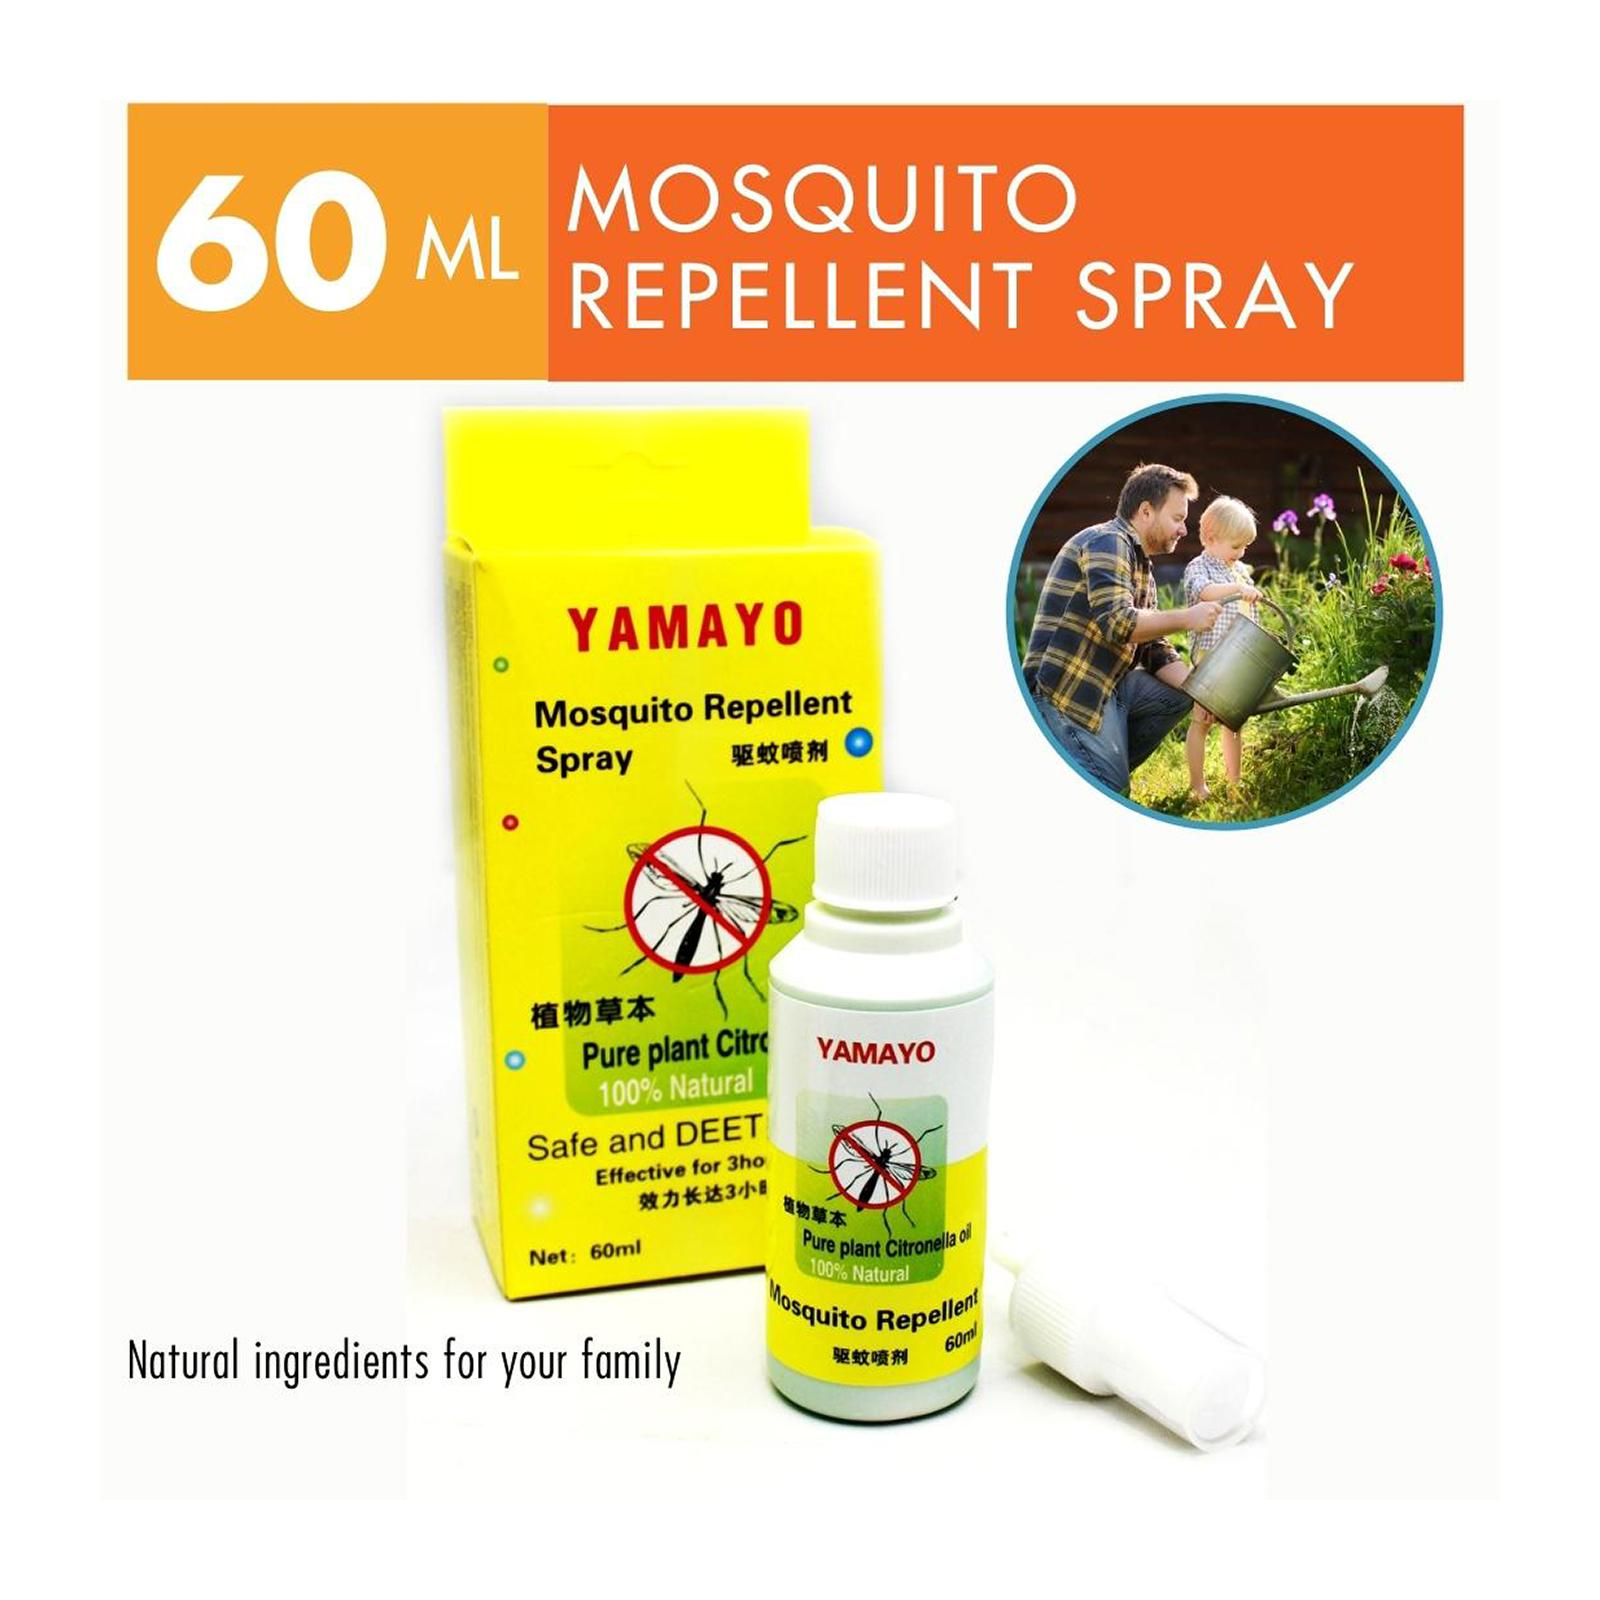 Yamayo Natural Mosquito Repellent Spray 60 ML with Citronella oil and Deet Free